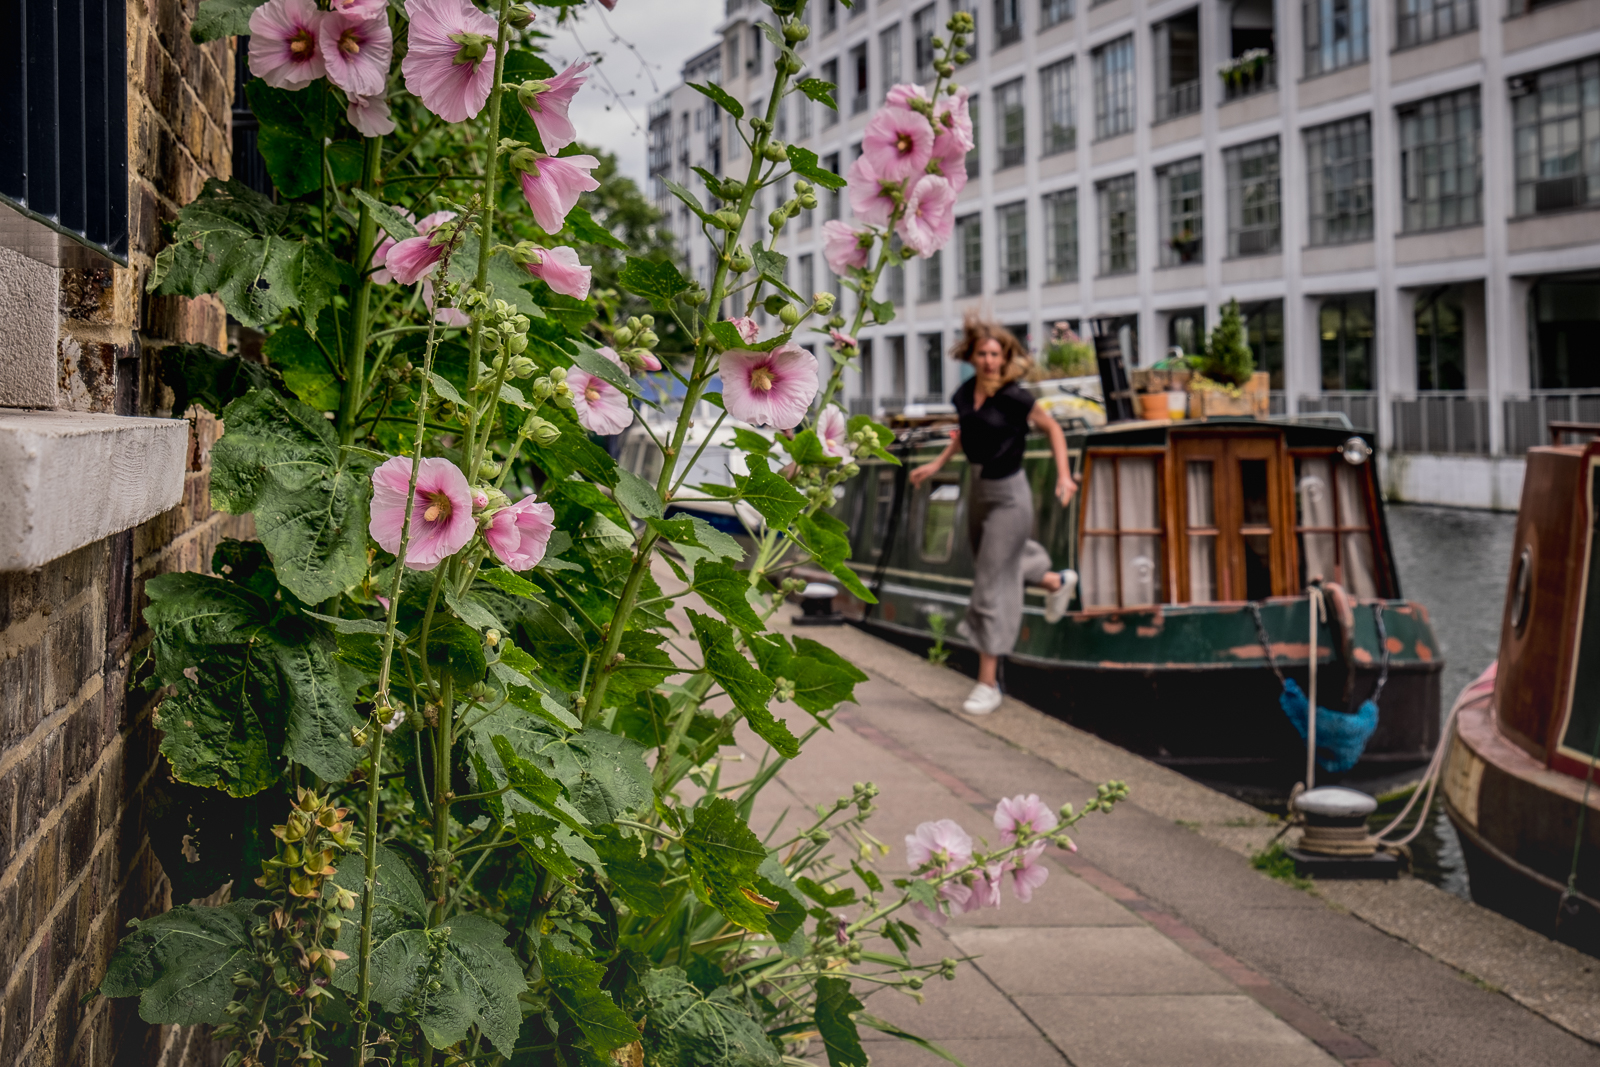 20160708_Islington_Regents-Canal_Running-on-the-Towpath